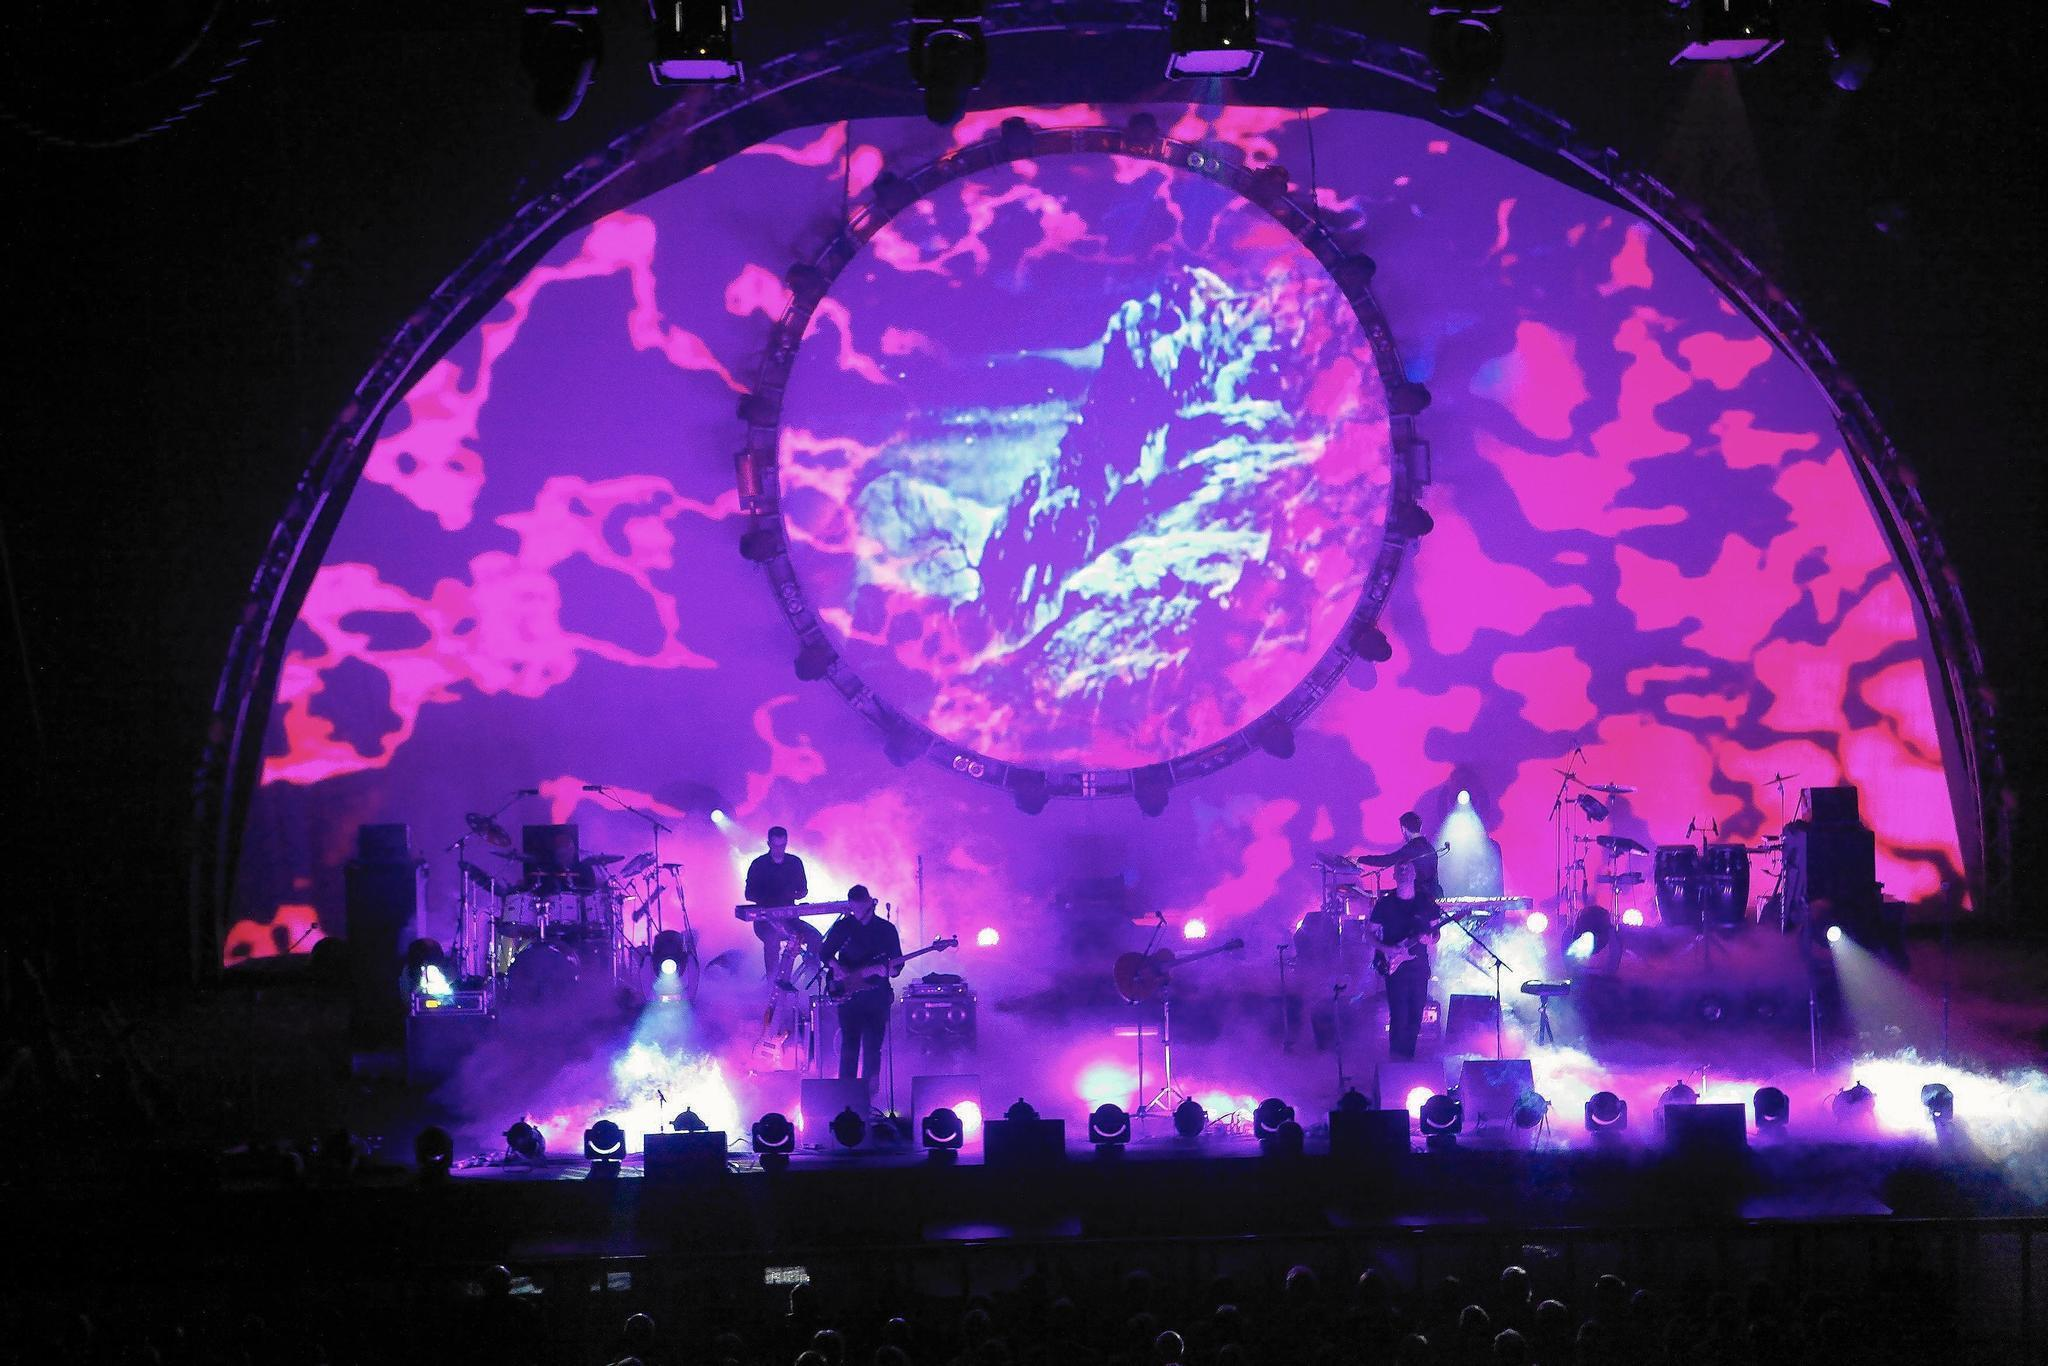 History of The Australian Pink Floyd Show